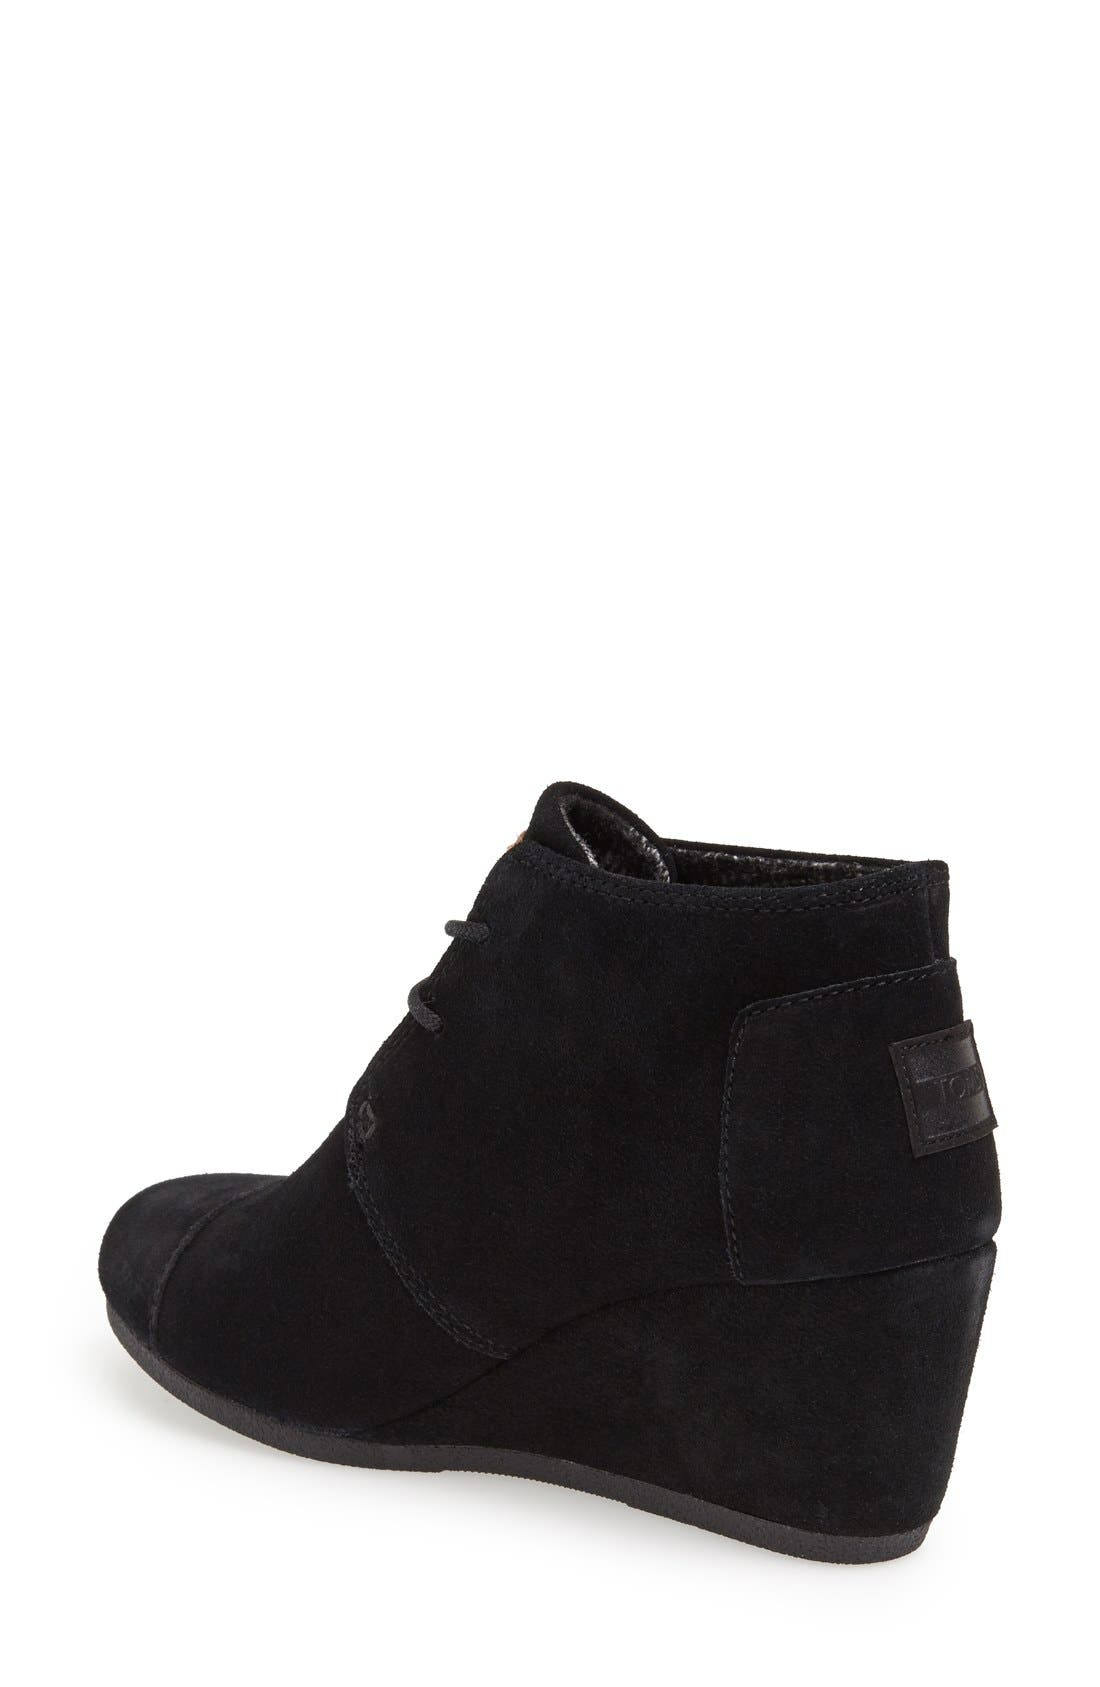 TOMS, 'Desert' Wedge Bootie, Alternate thumbnail 3, color, 001